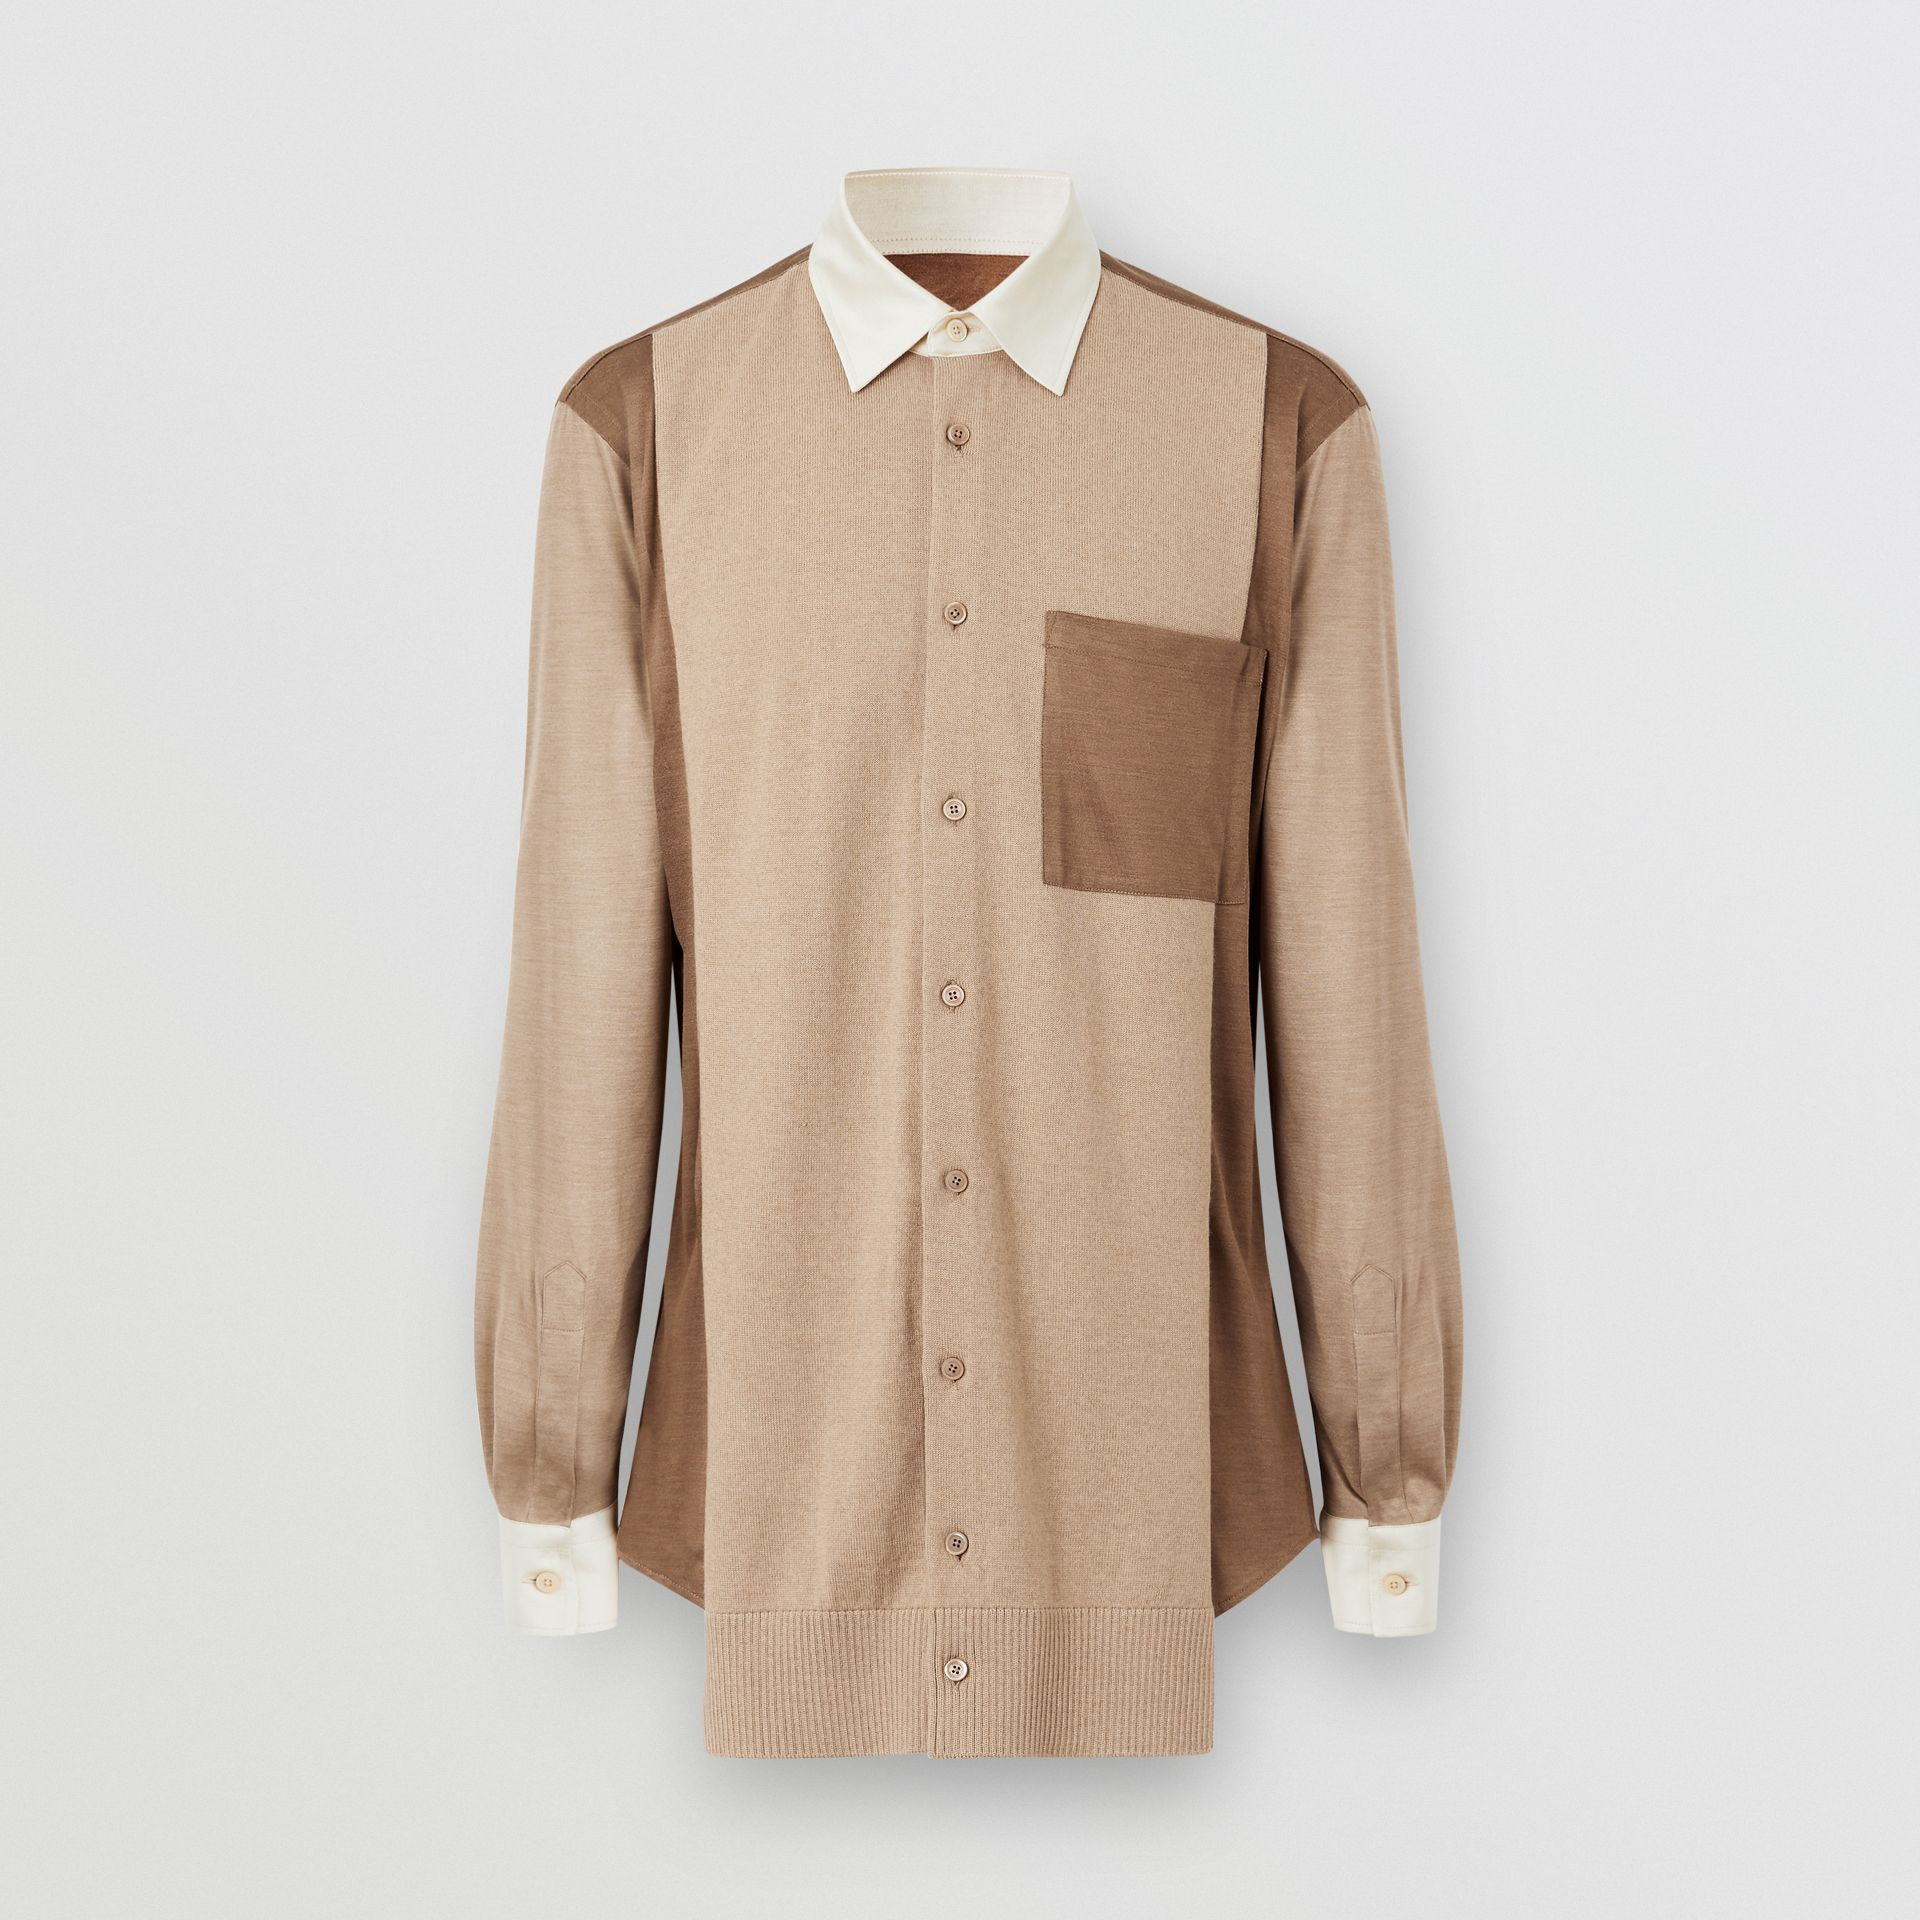 Classic Fit Panelled Silk and Merino Wool Shirt in Warm Camel - Men | Burberry United Kingdom - gallery image 3